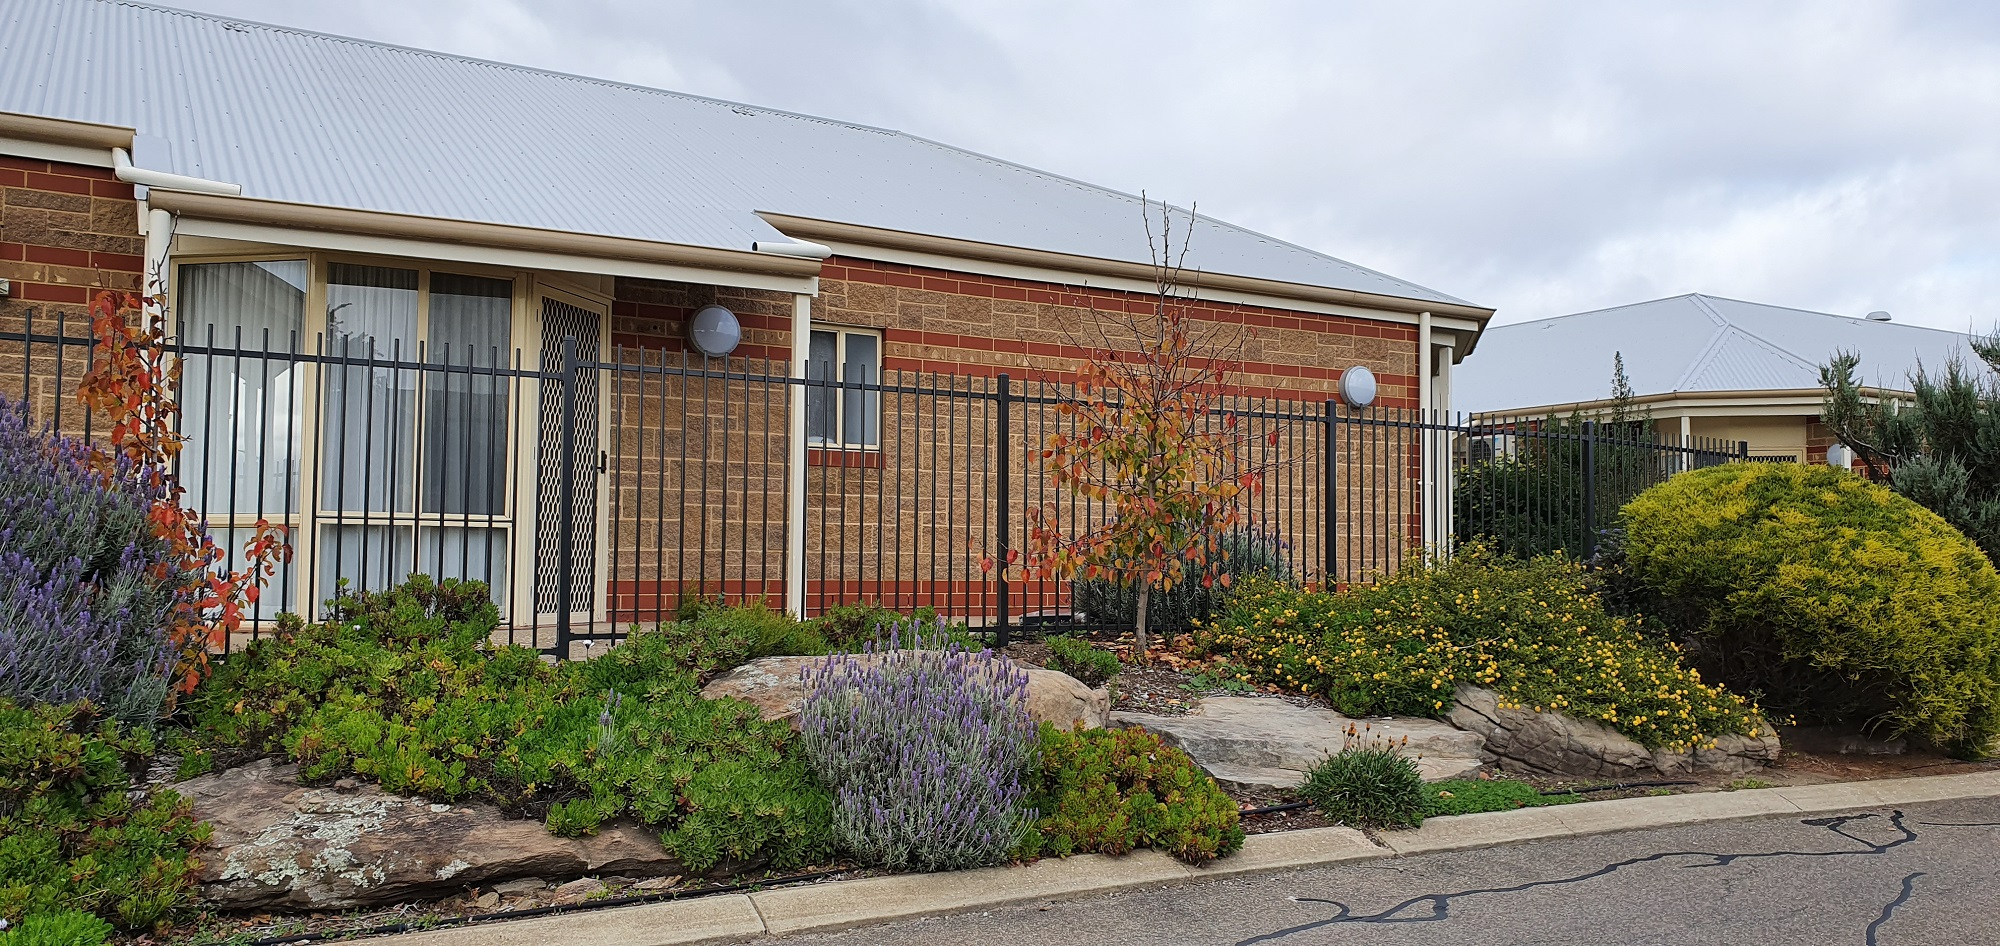 Commercial Fencing Adelaide Fence Centre Retirement Village Boundary Fencing 8